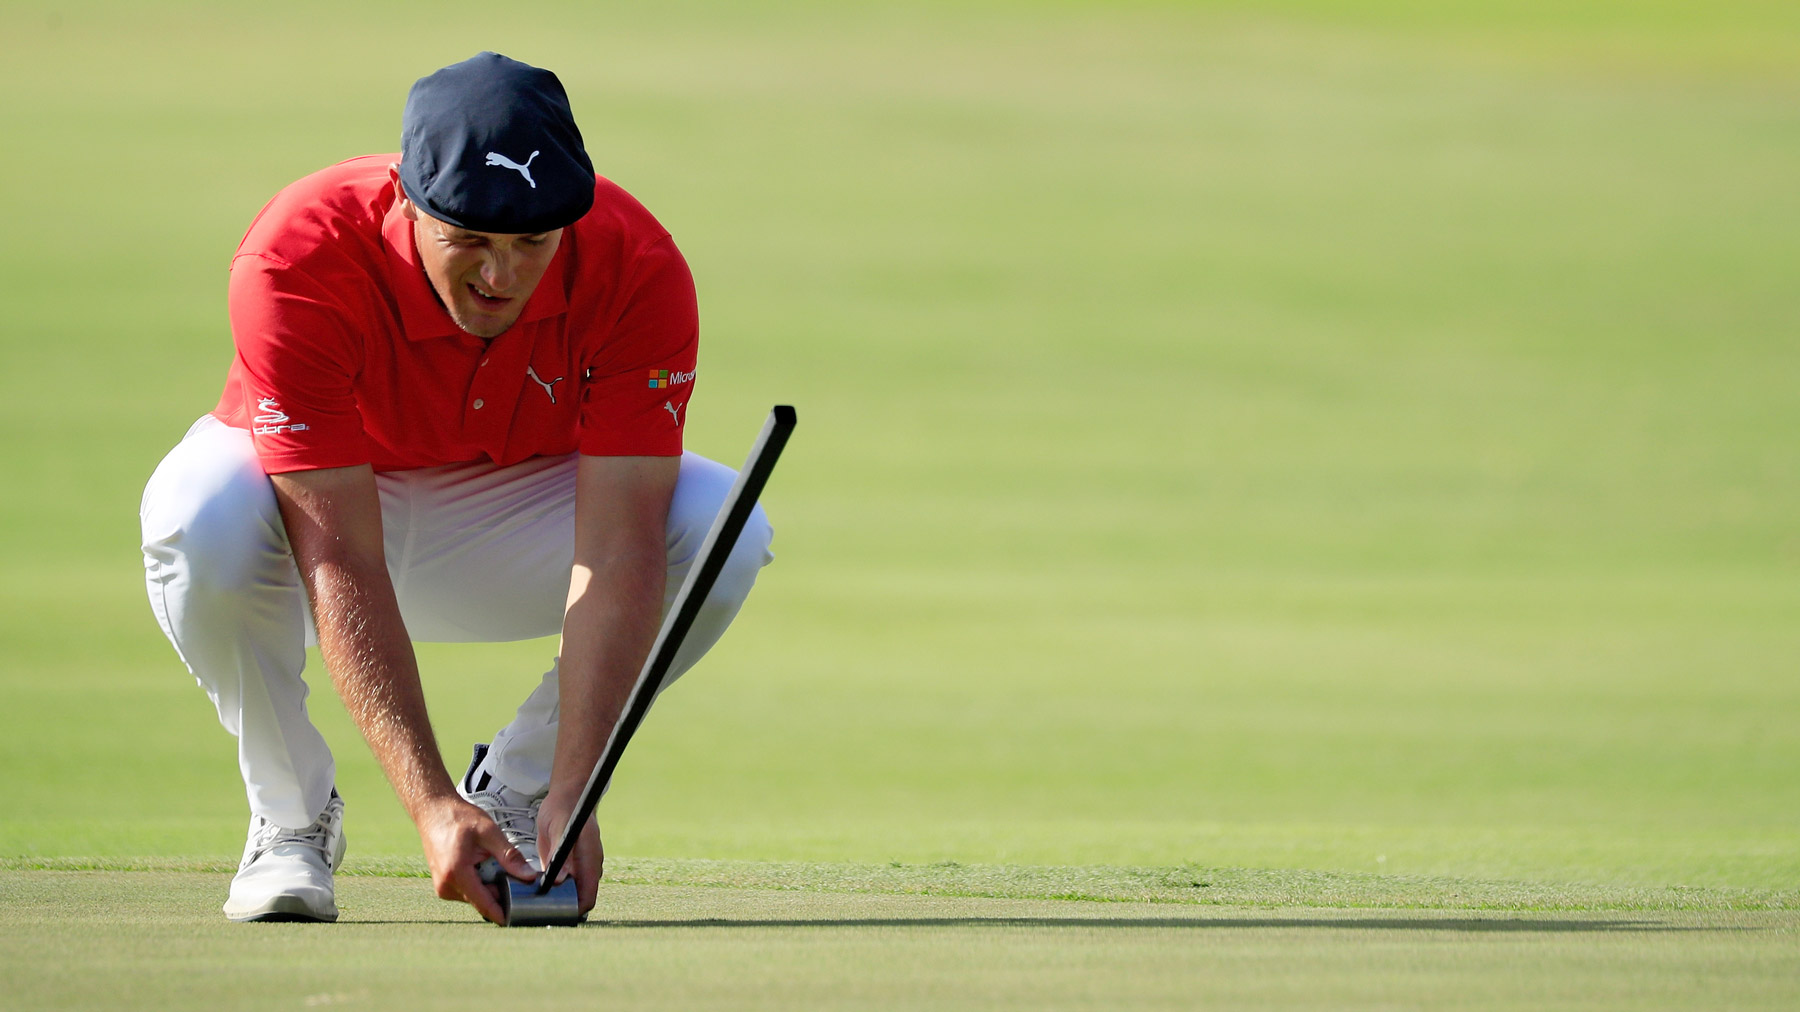 Bryson DeChambeau lines up a putt before employing his side-saddle putting technique at the 2017 Sony Open.